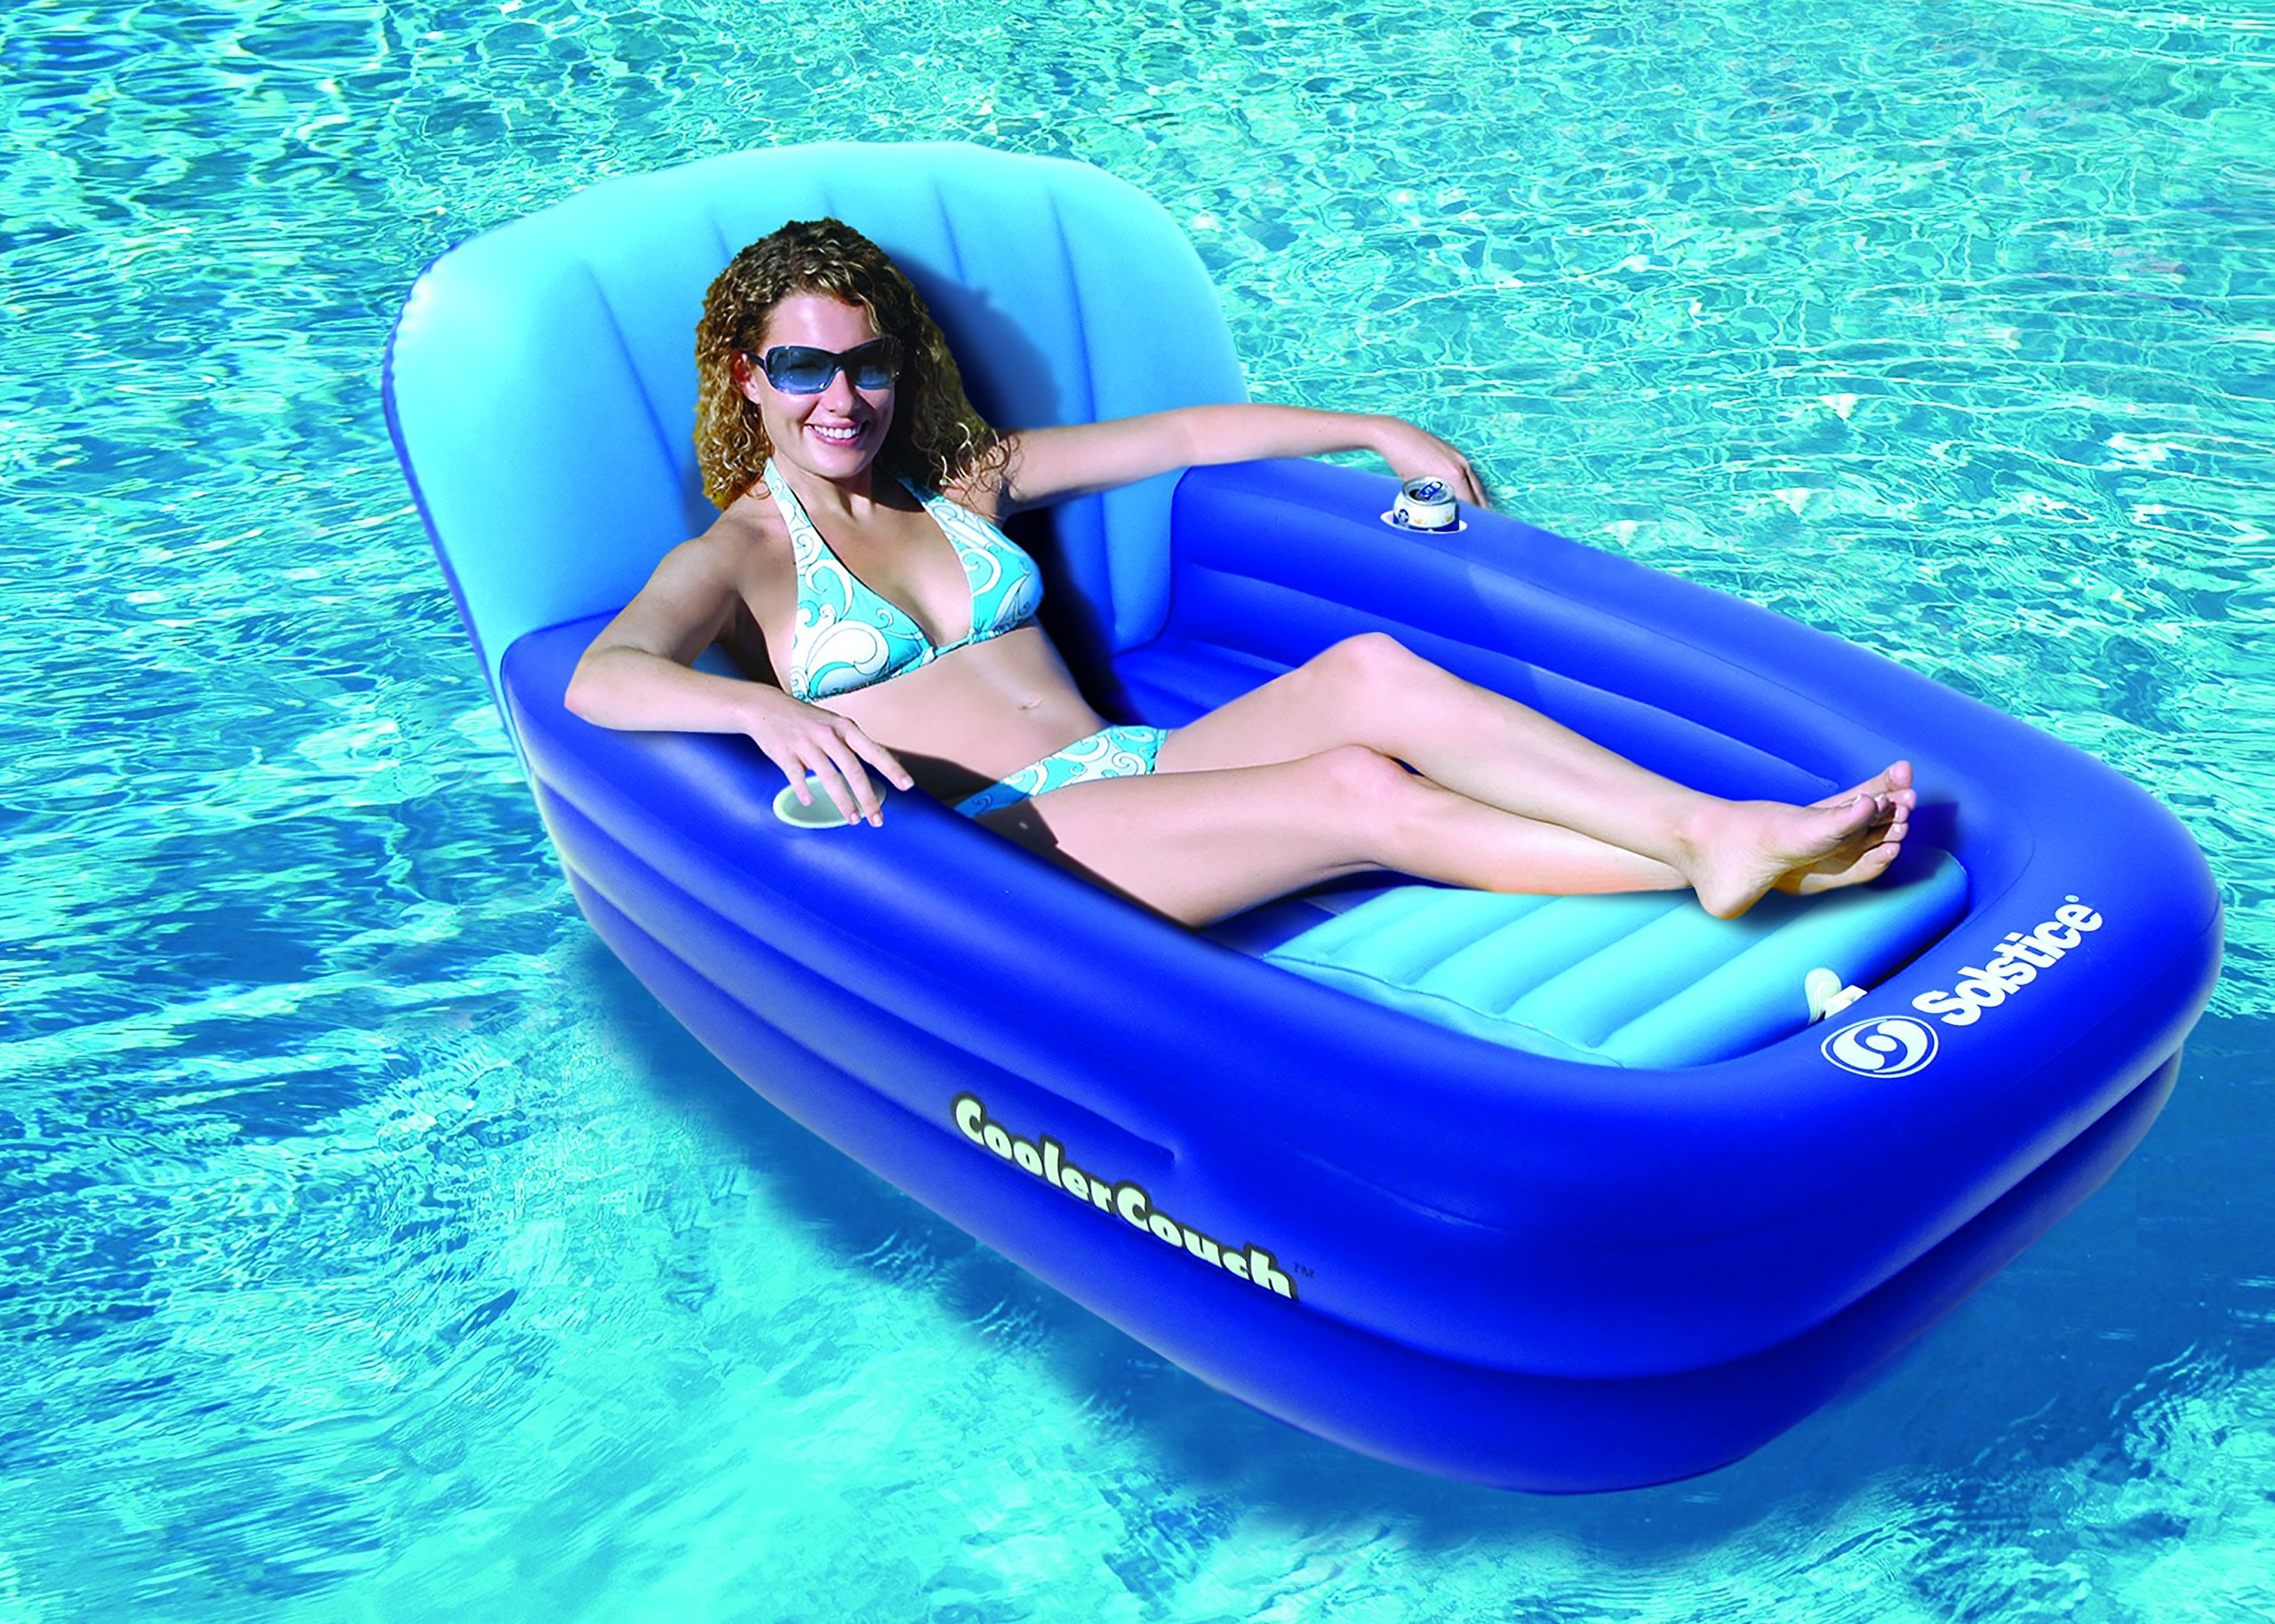 Solstice by Swimline Cooler Couch Inflatable Pool Lounger by Swimline (Image #2)